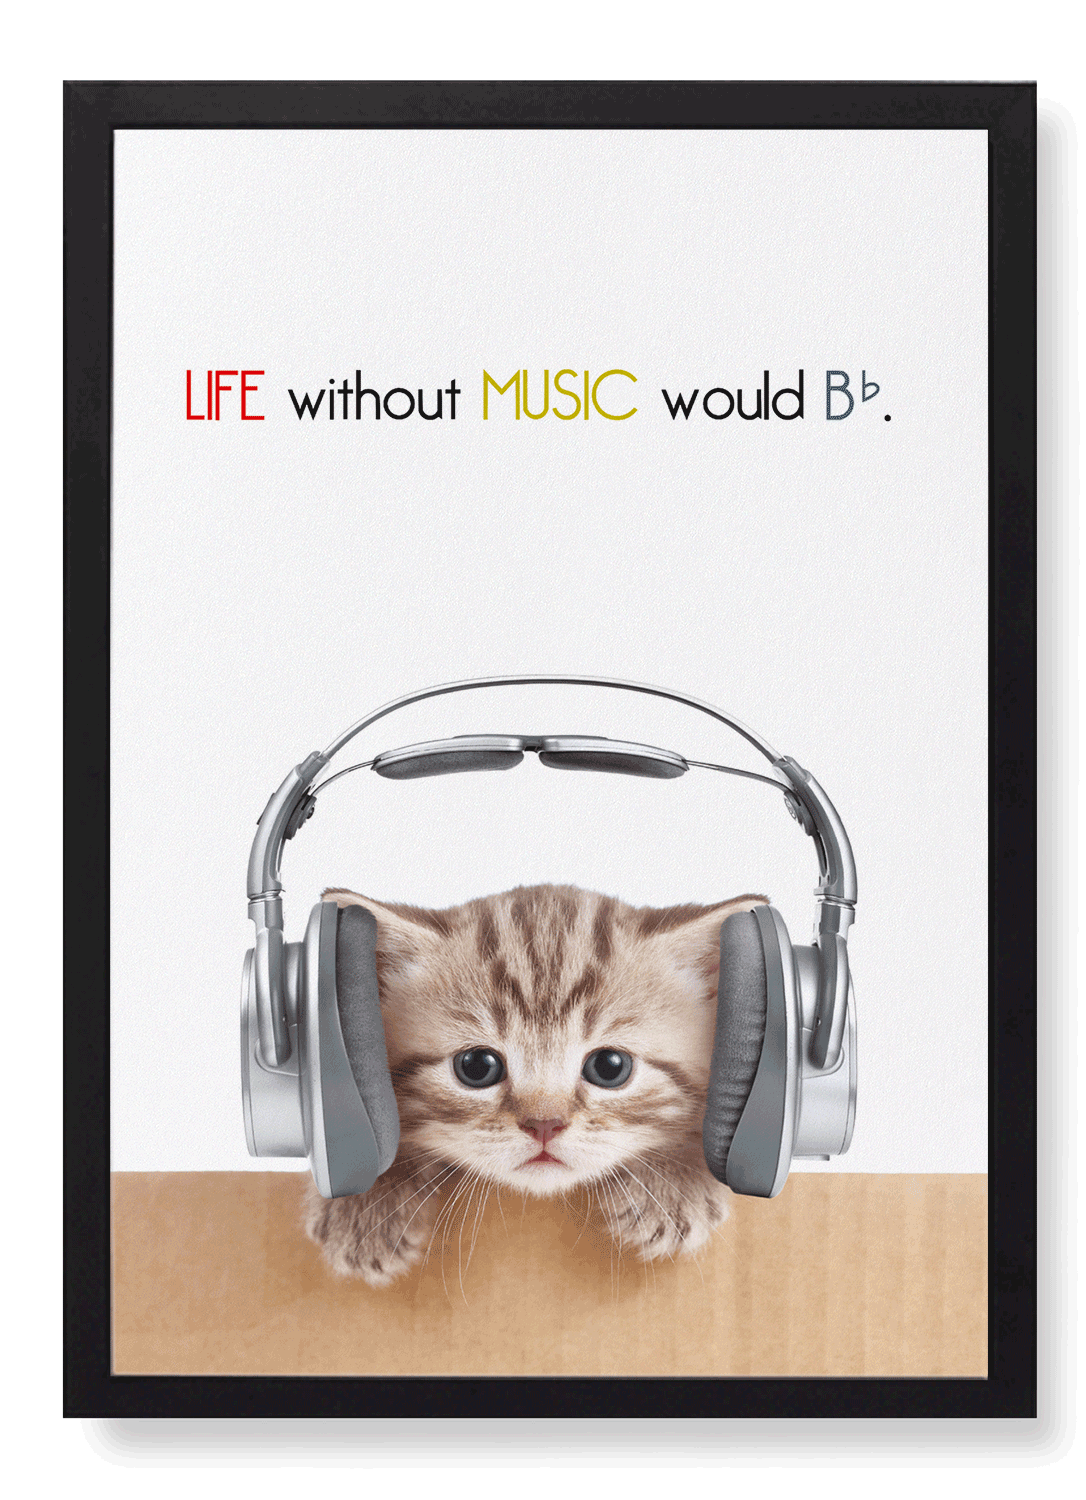 LIFE WITHOUT MUSIC WOULD BE FLAT